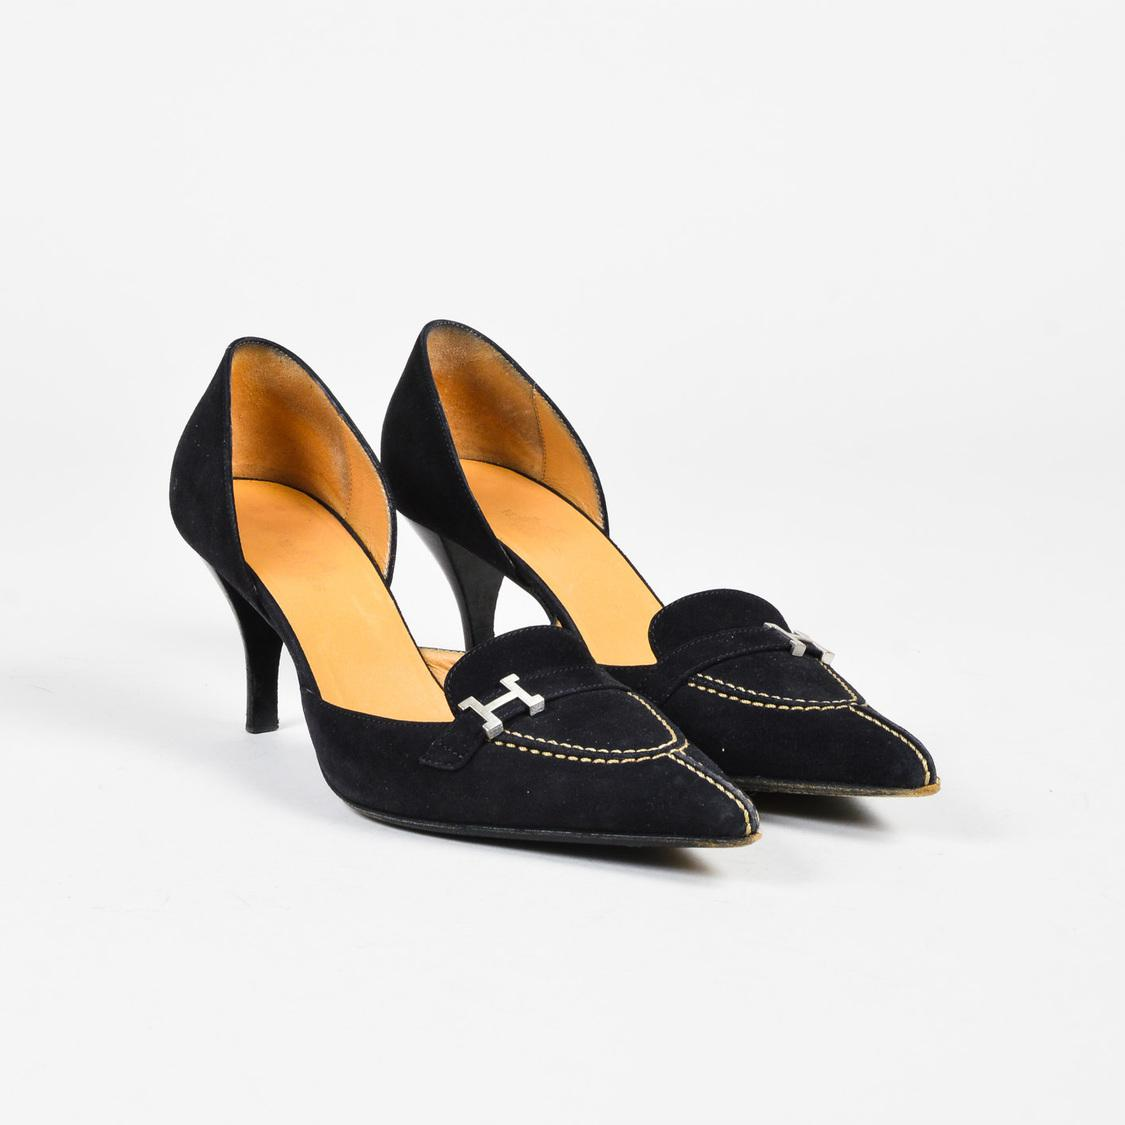 Hermès Suede Pointed-Toe Pumps sale get authentic clearance big discount new sale online outlet websites cheap sale really aggHvCA